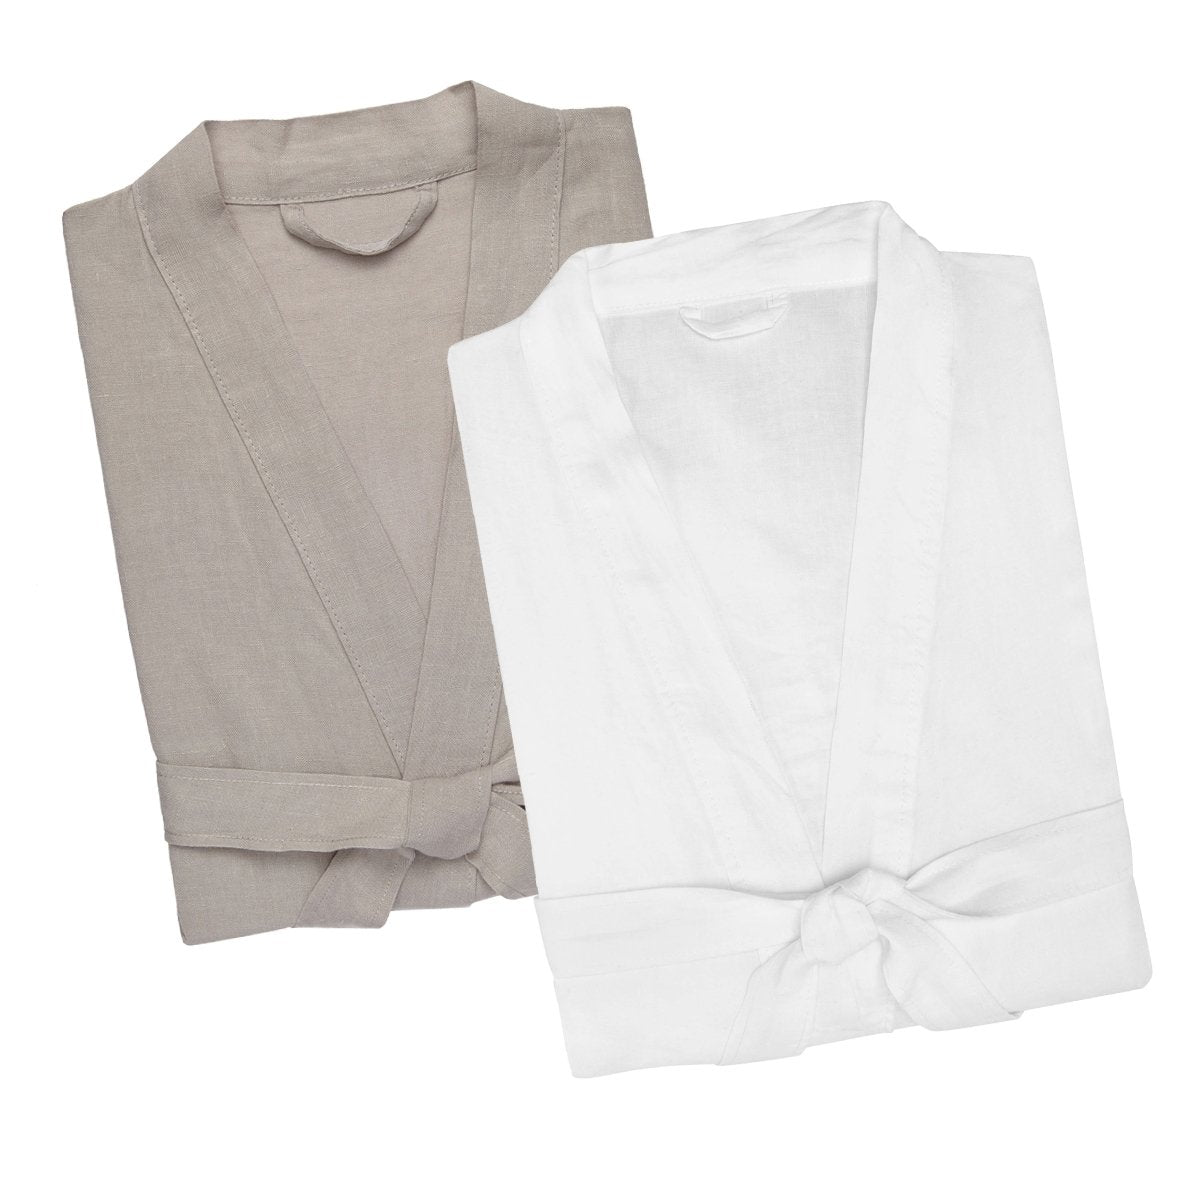 Men's Linen Bath Robe - SM